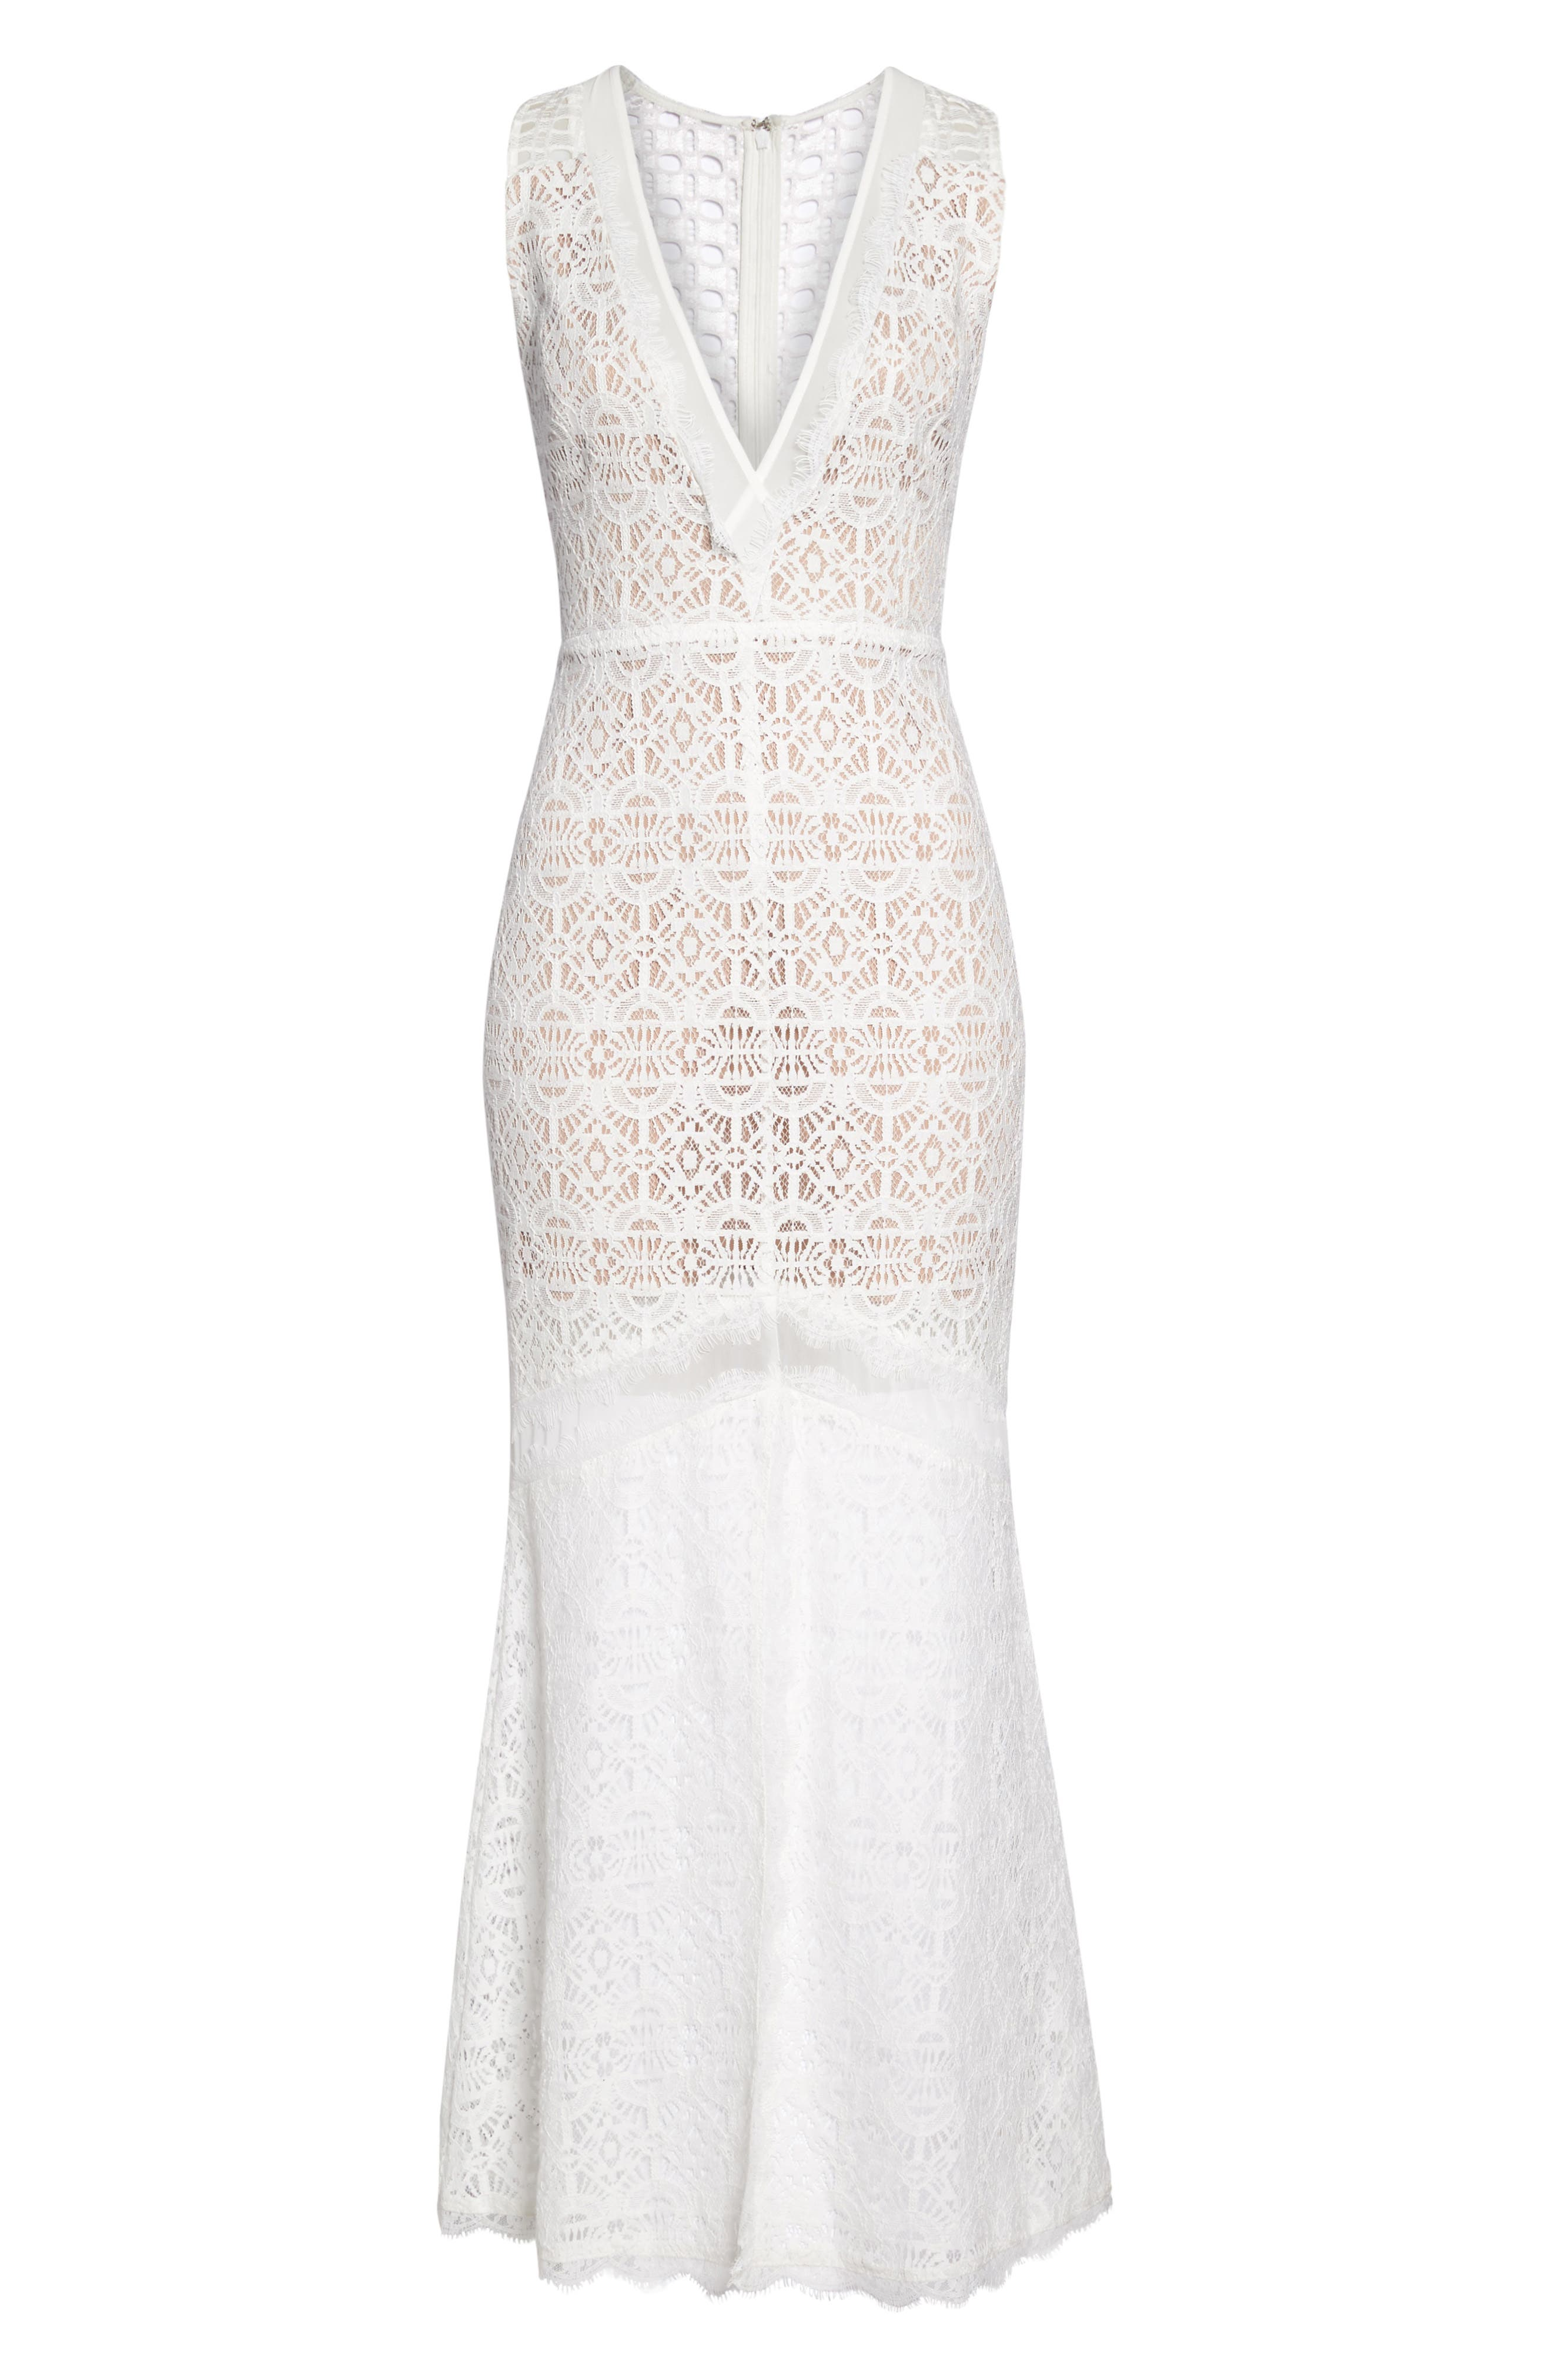 HARLYN,                             V-Neck Lace Trumpet Gown,                             Alternate thumbnail 6, color,                             900